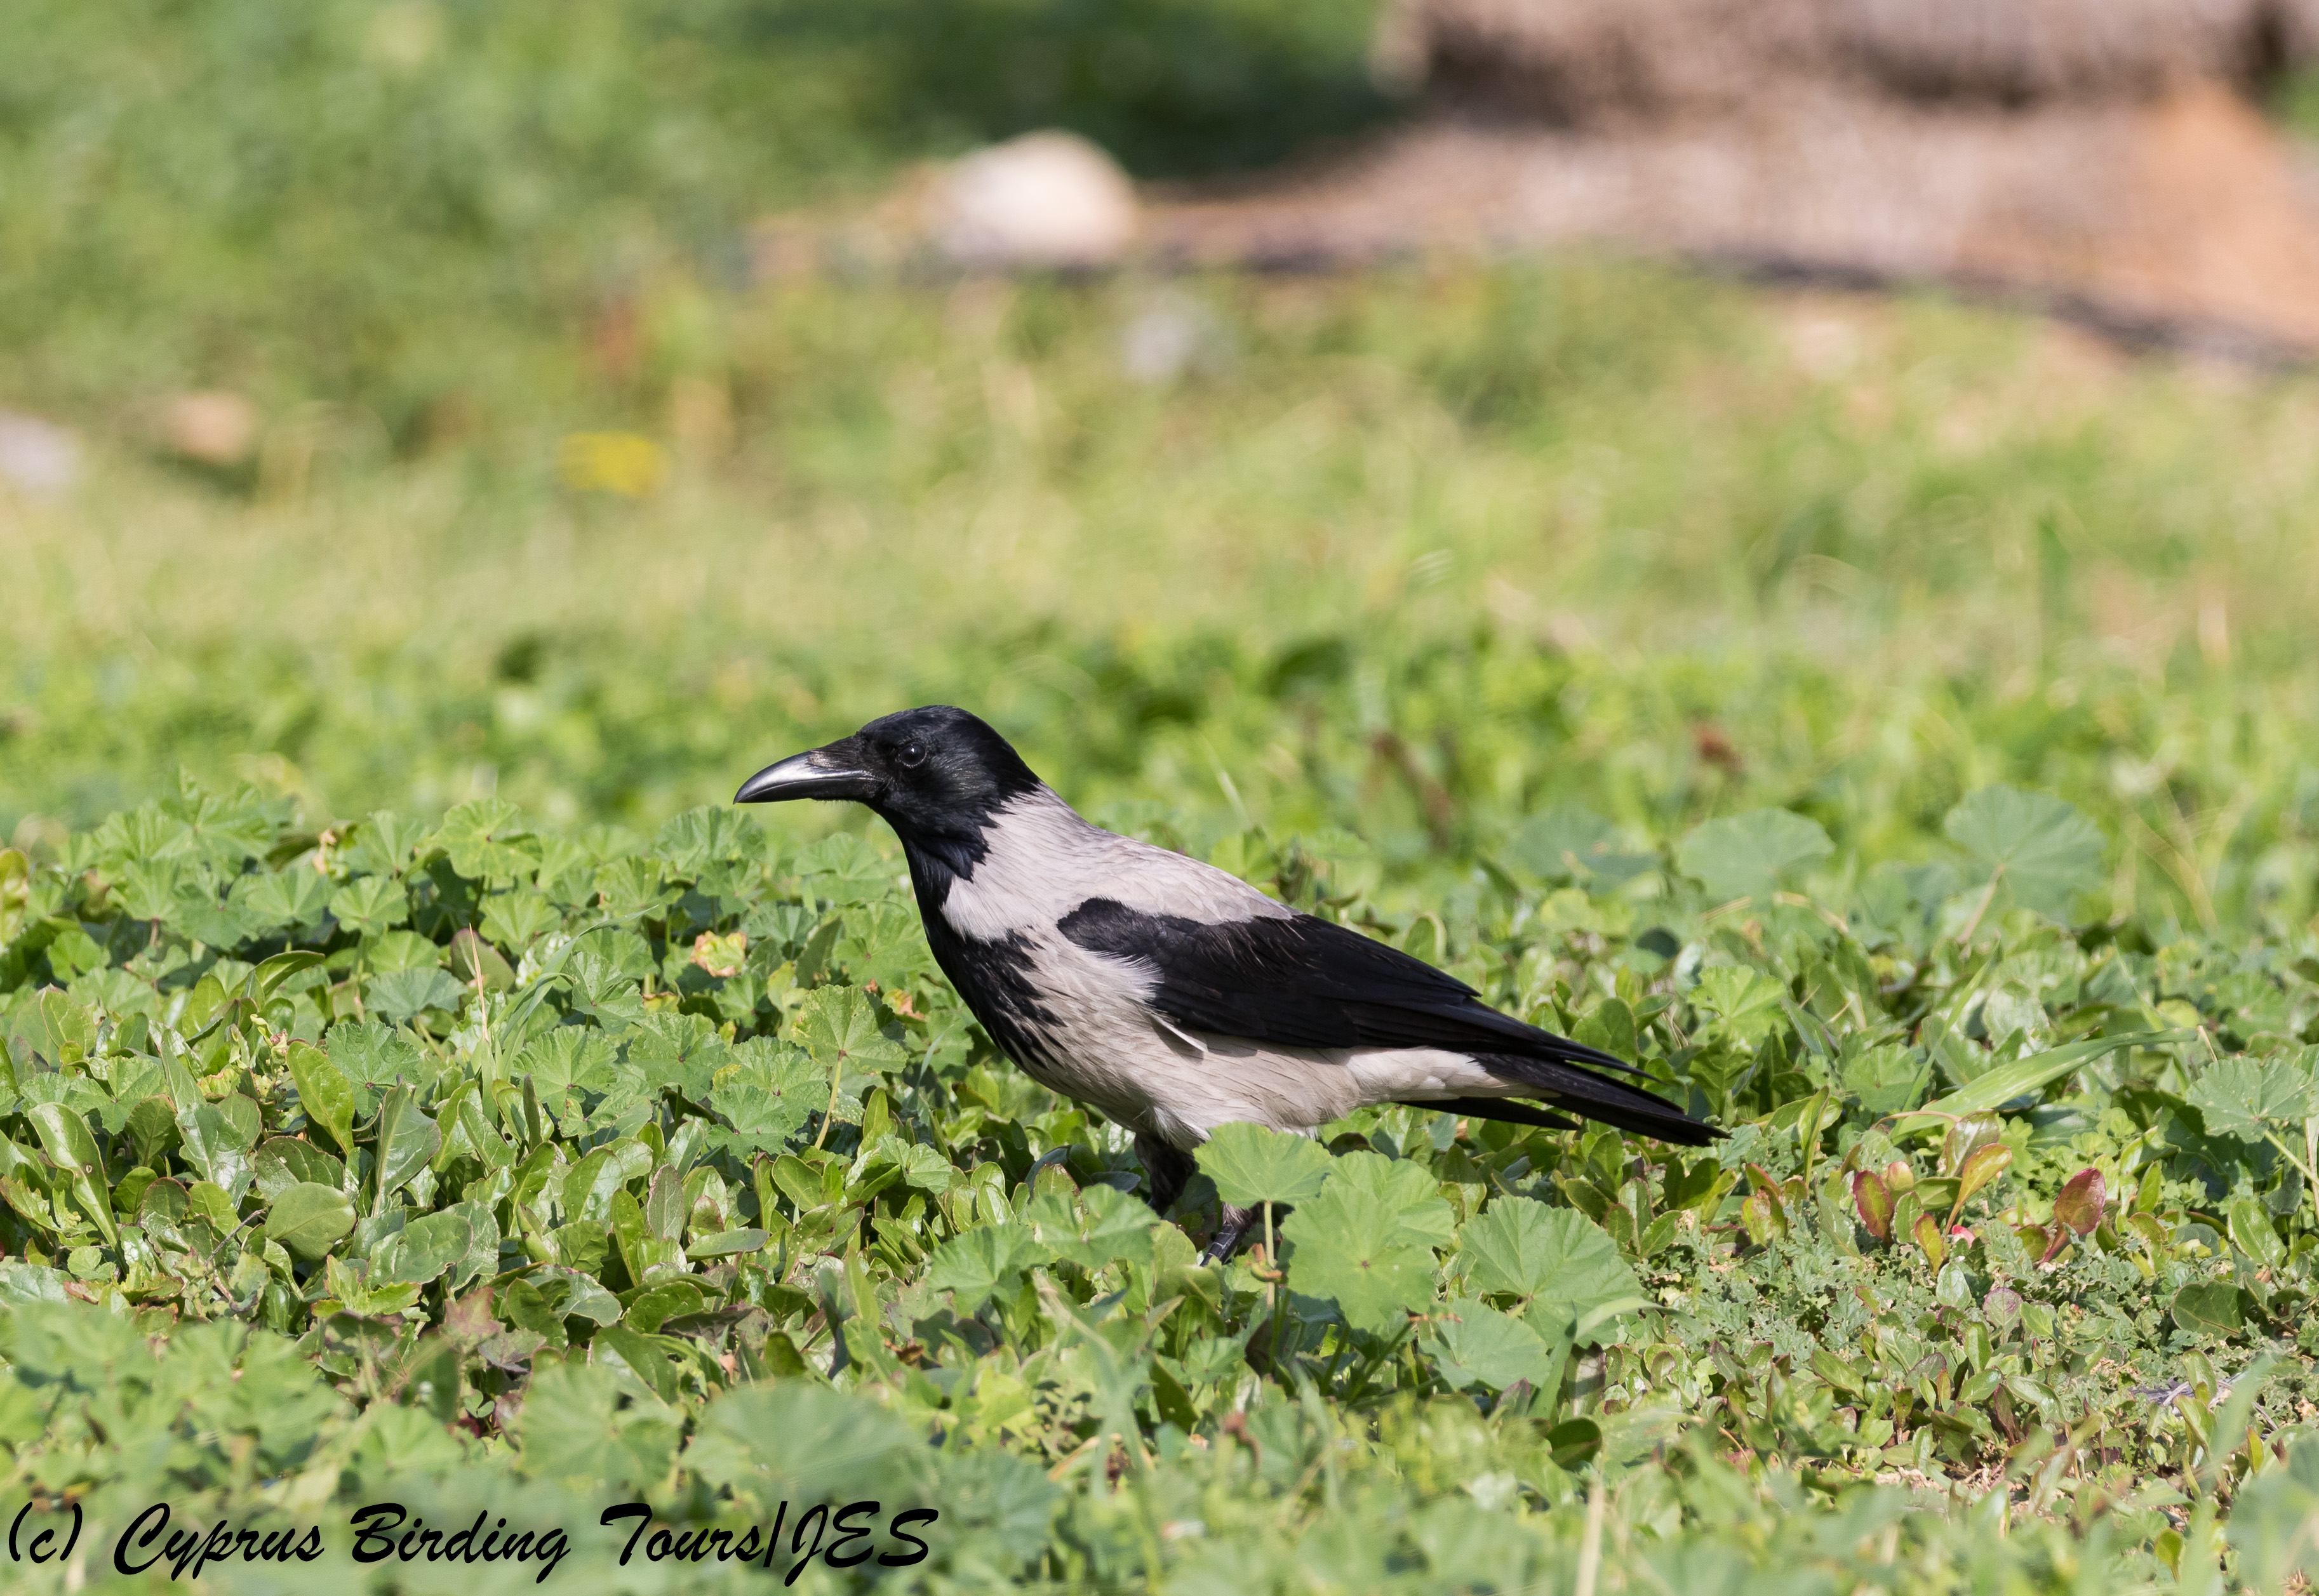 Hooded Crow, Paphos Headland 9th January 2018 (c) Cyprus Birding Tours